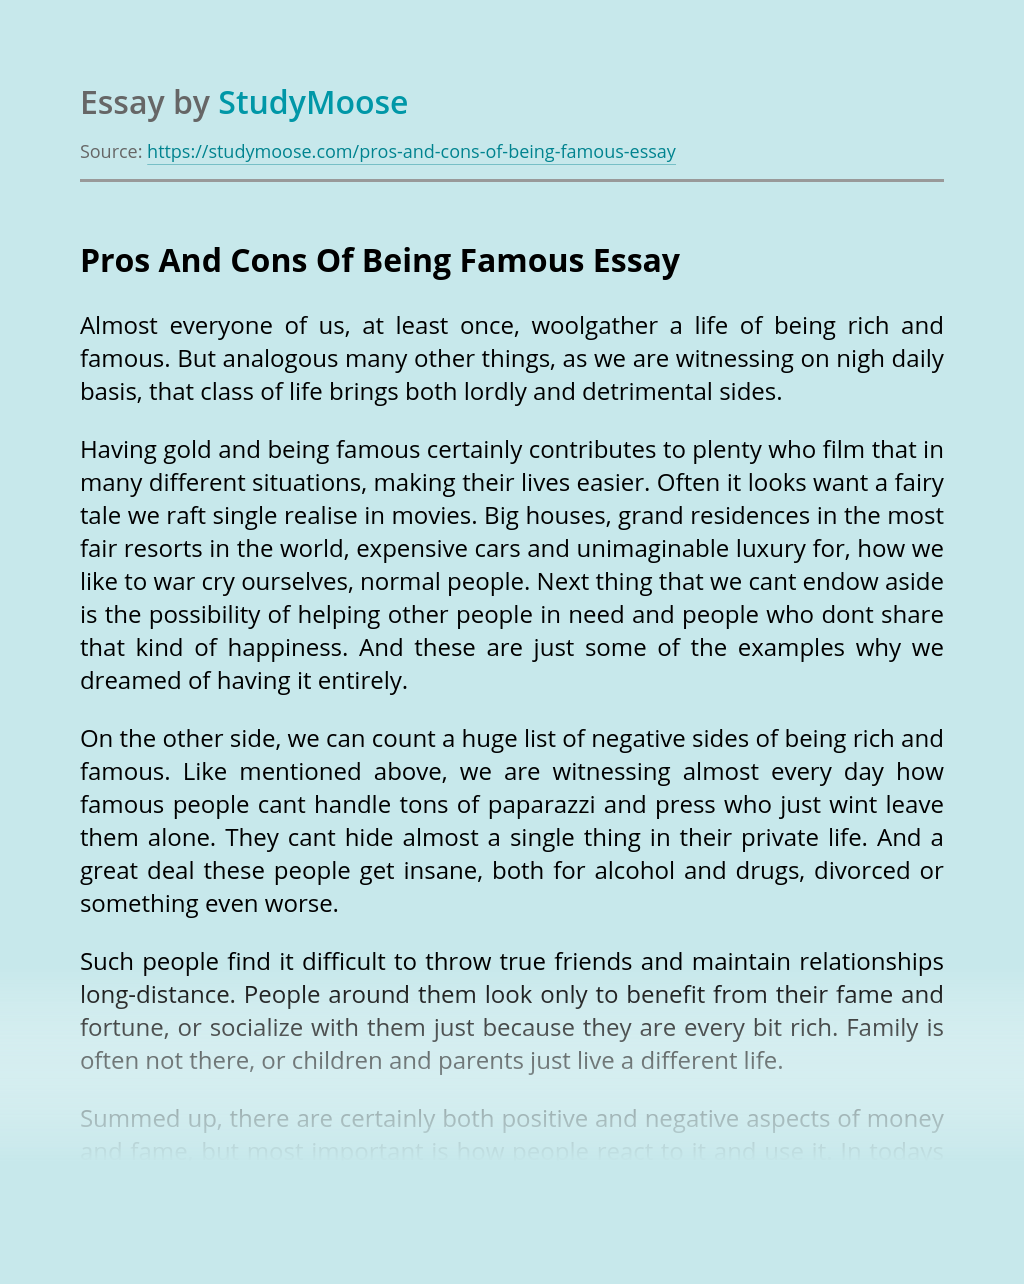 Pros And Cons Of Being Famous